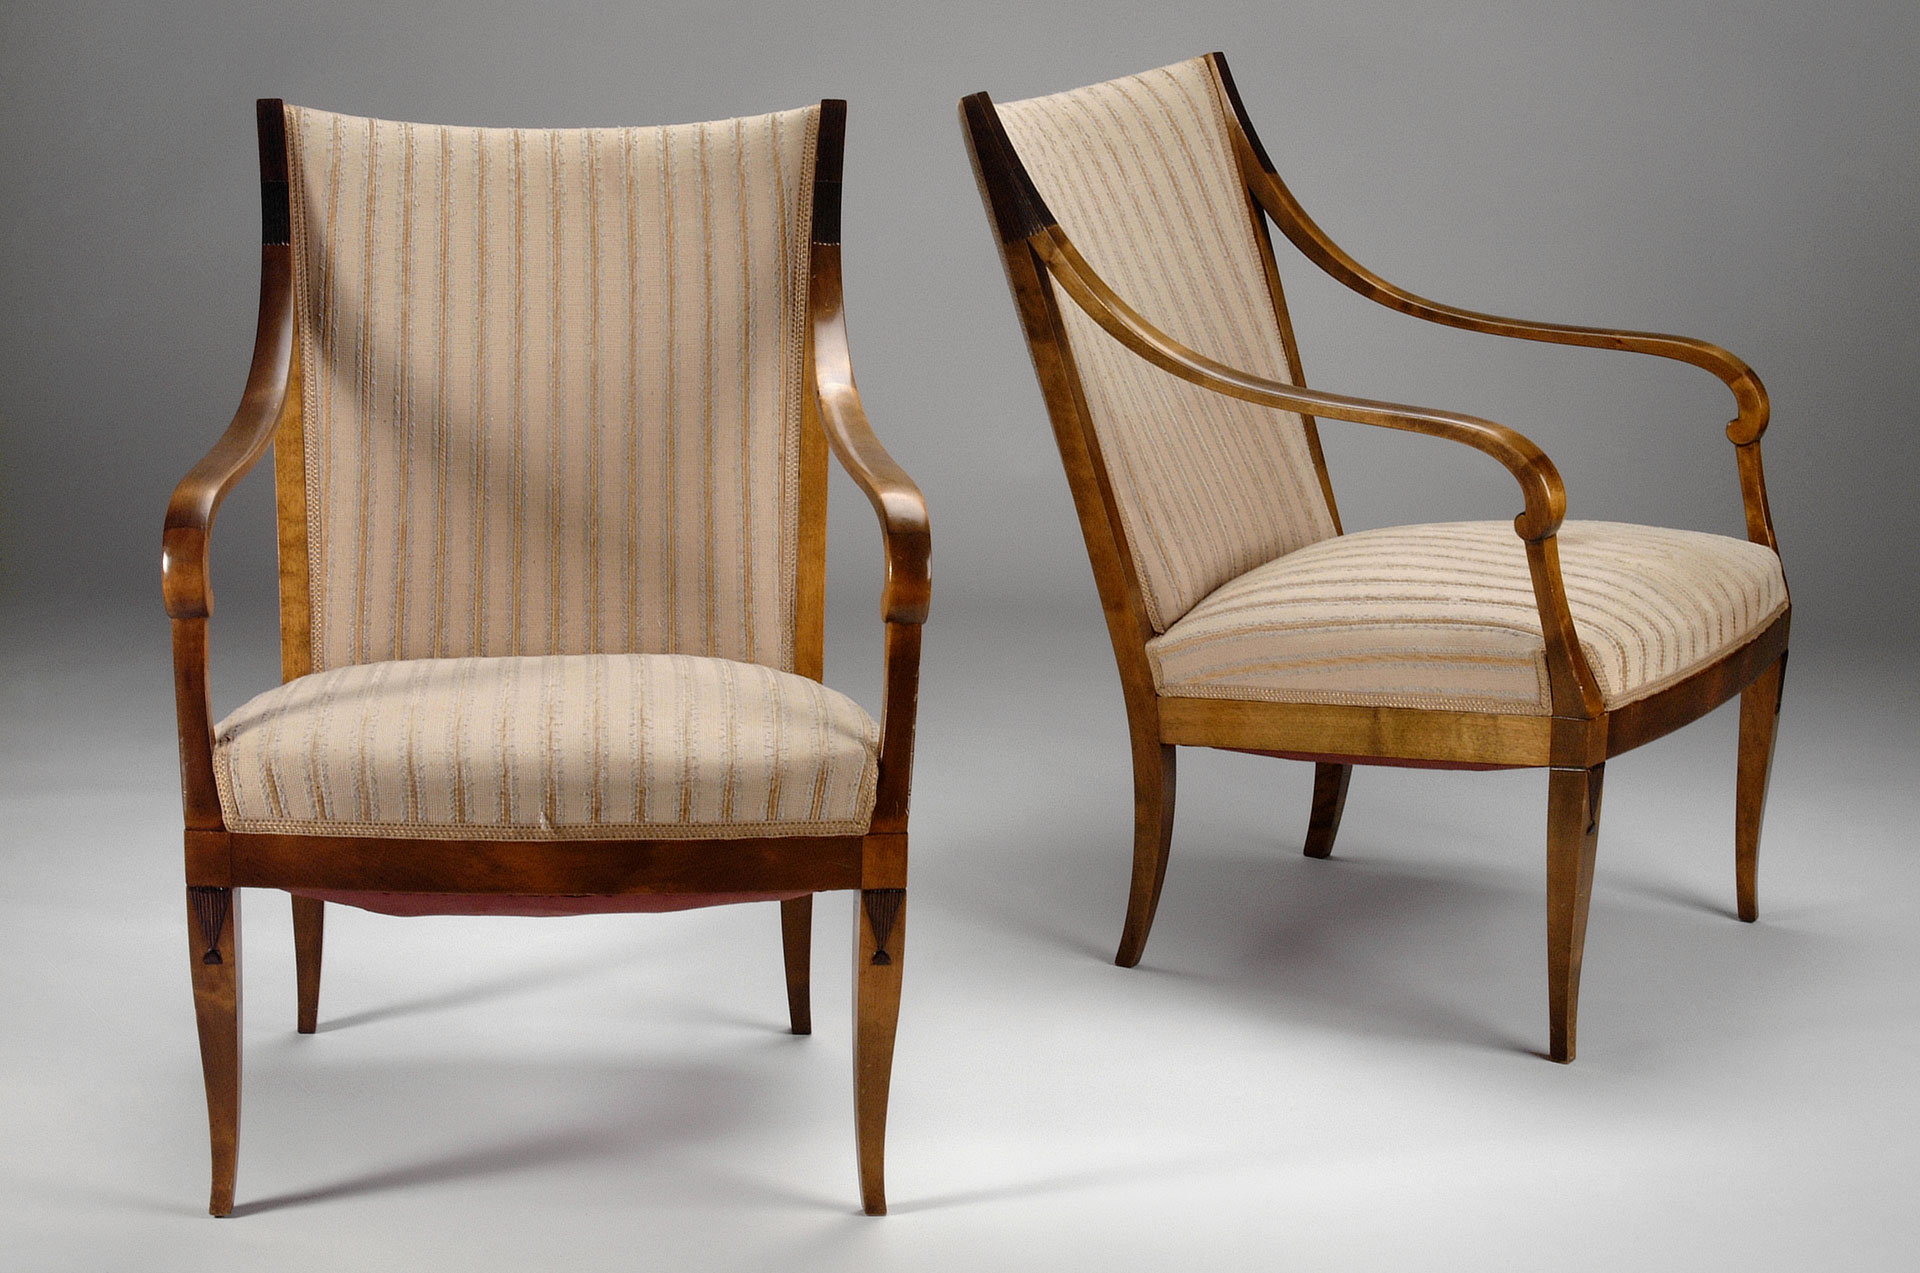 A Pair of Malmsten Armchairs